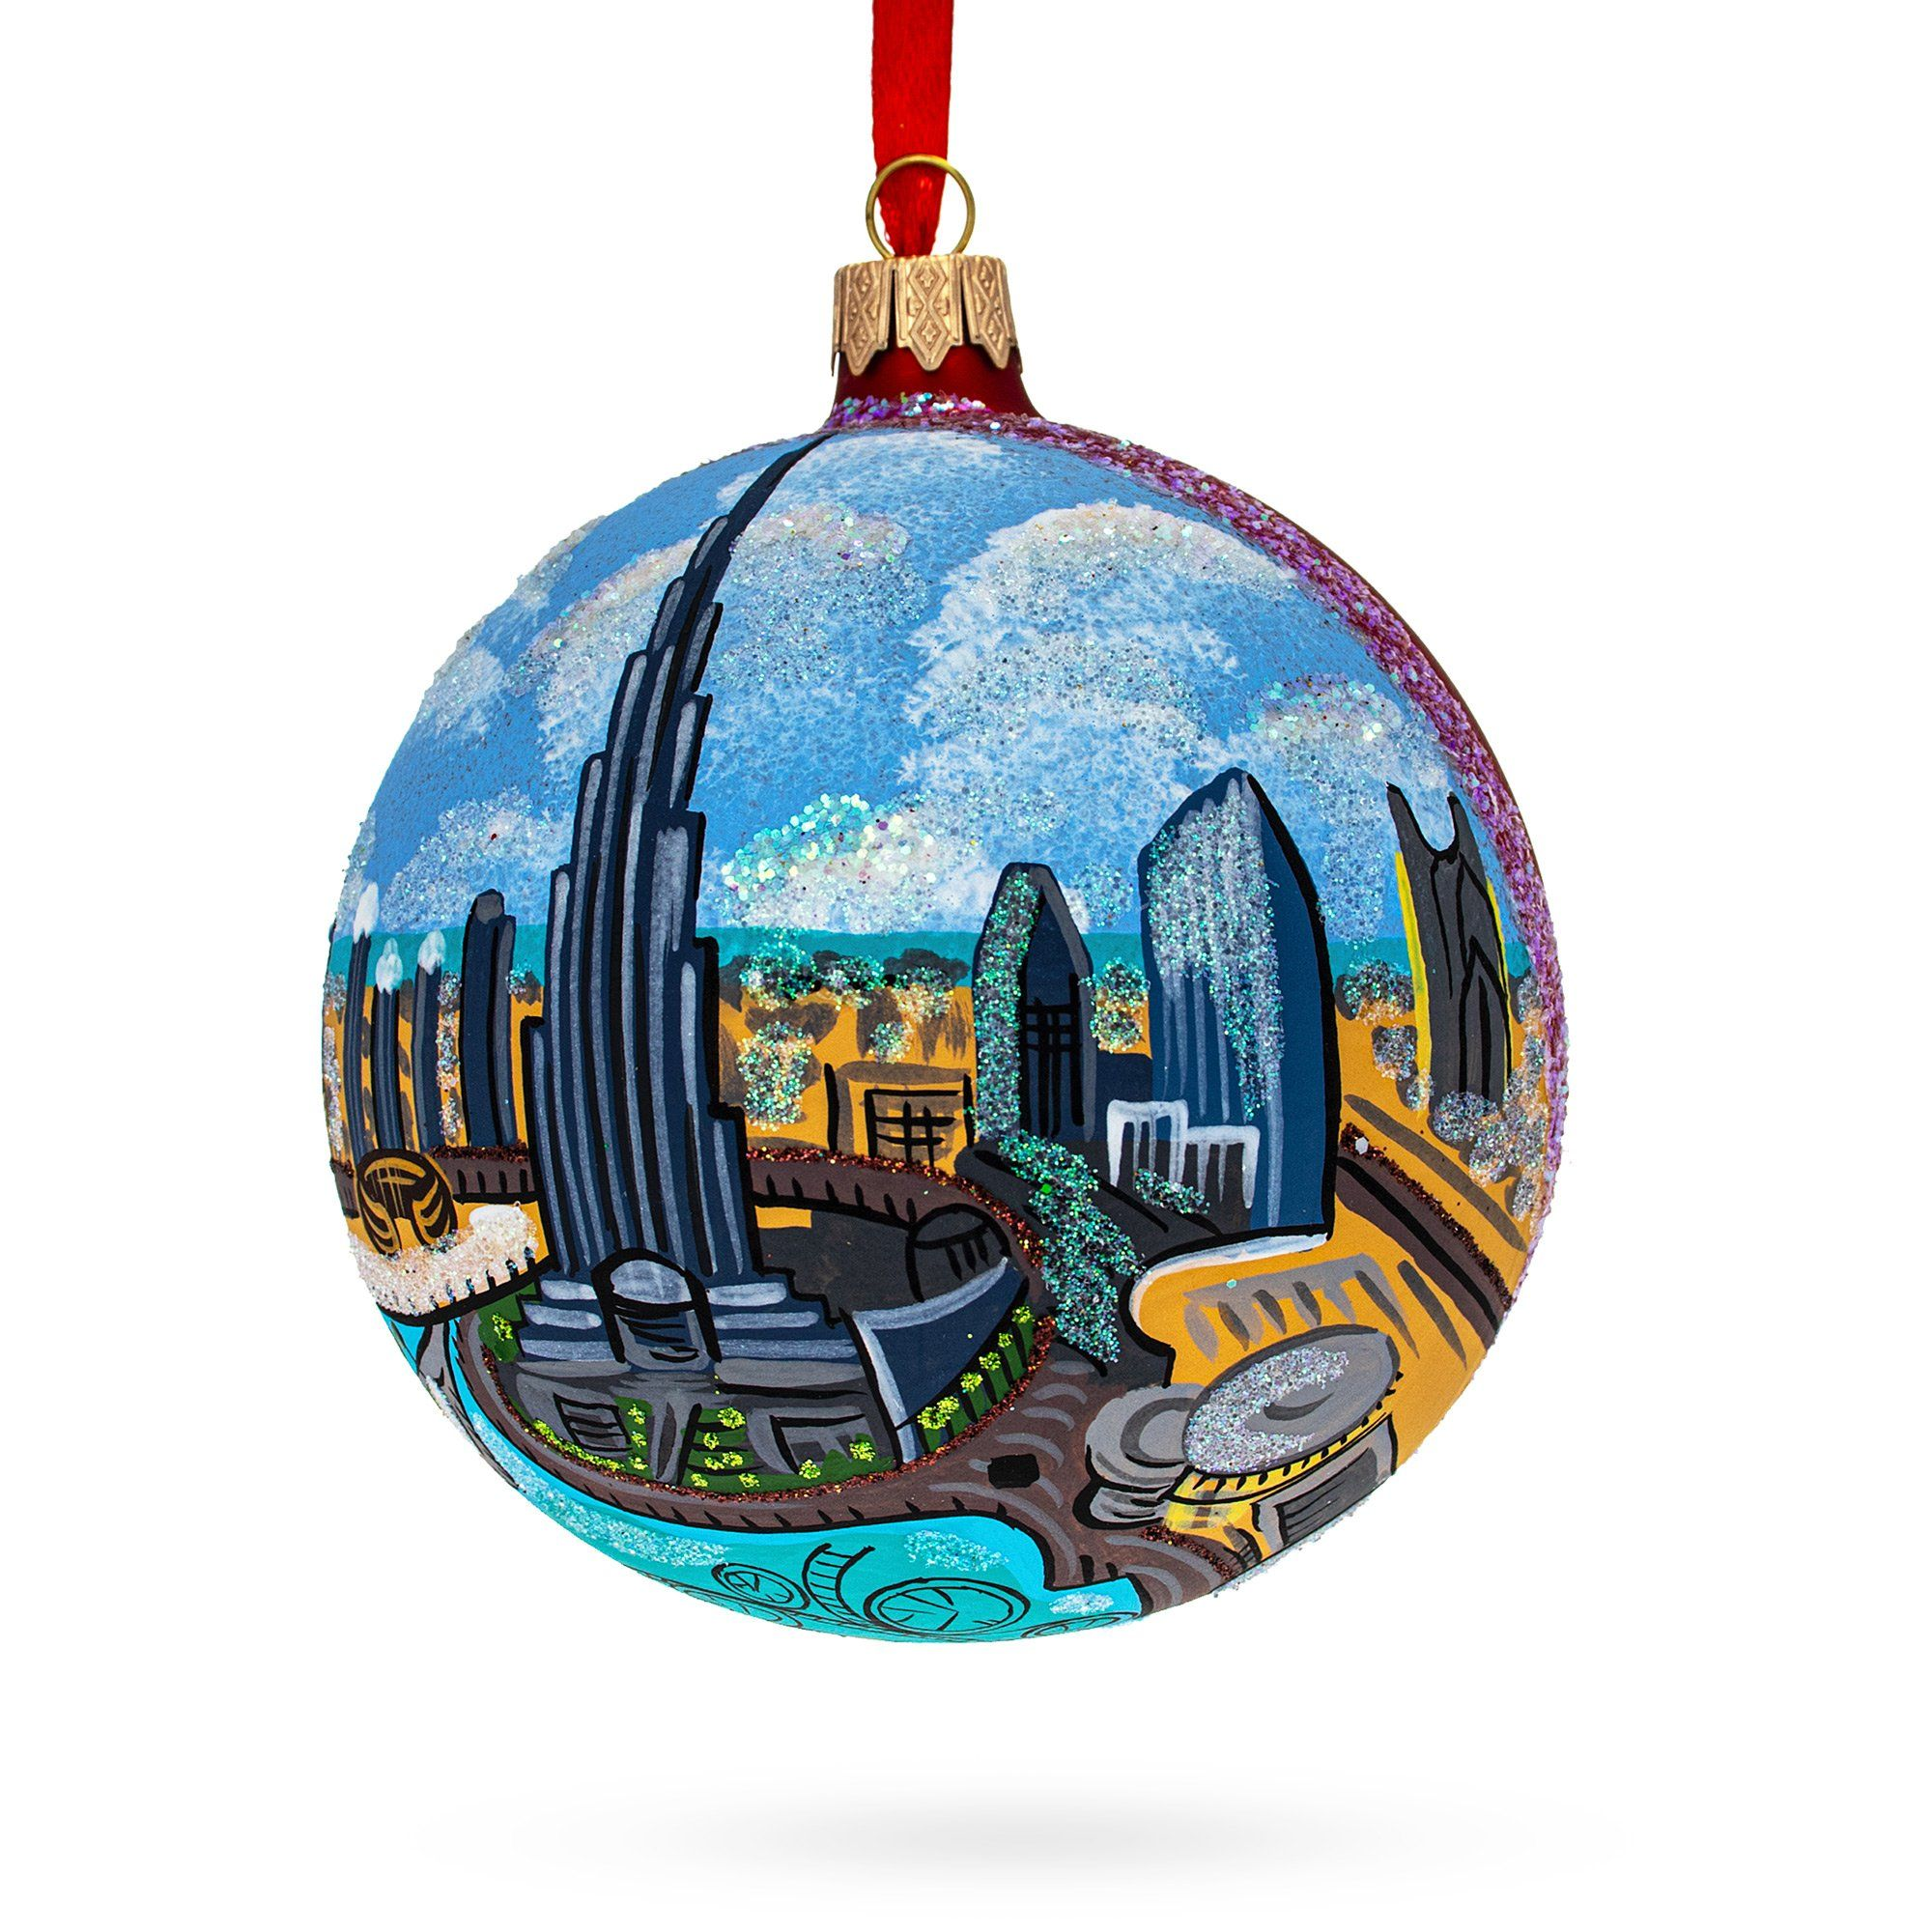 Christmas Presents Hand Painted Christmas Ball Made in Ukraine Hand Painted Mouth Blown Glass Christmas Tree Ball Ornament